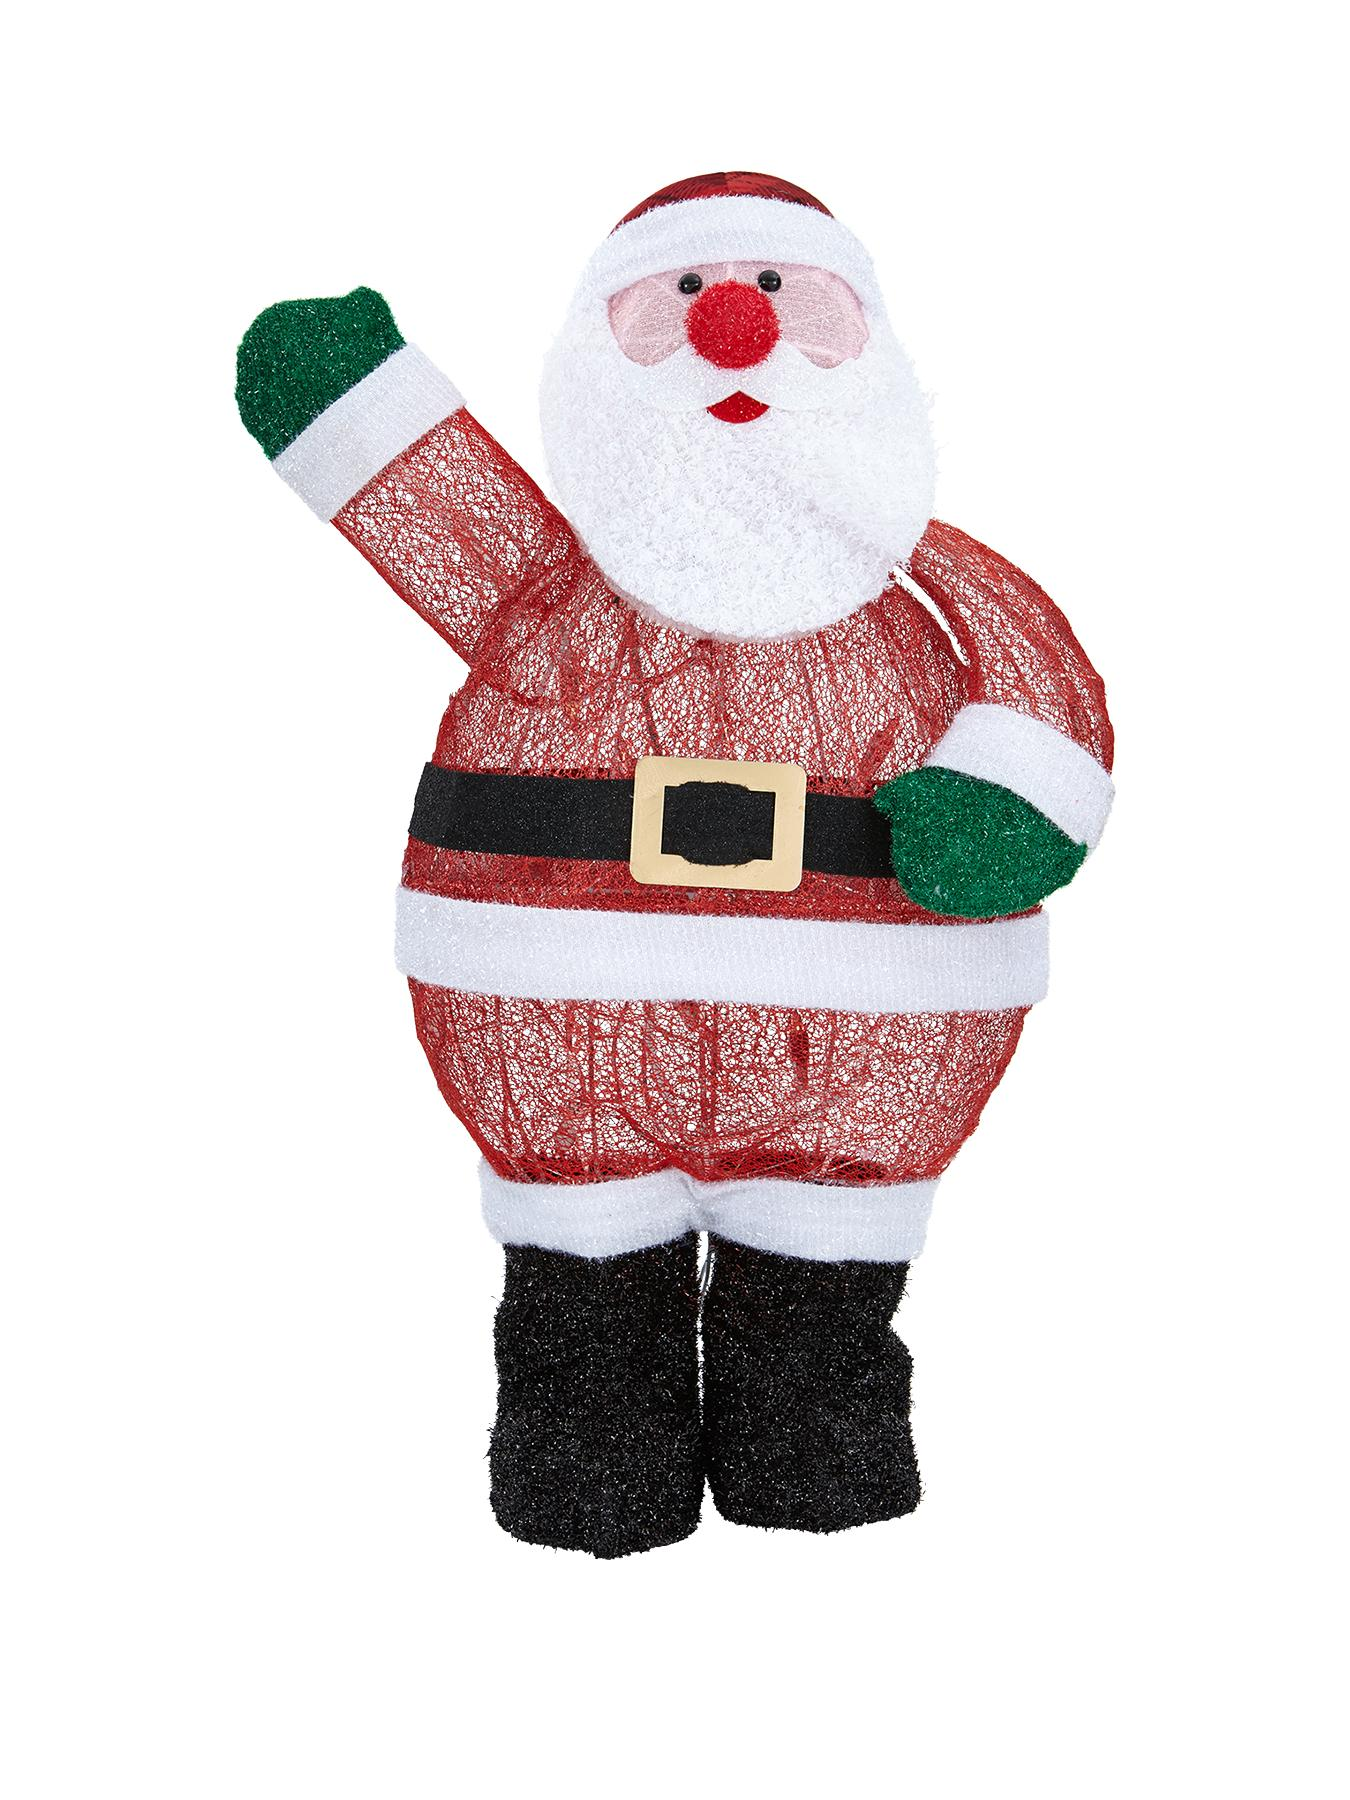 Latest Offers | Christmas decorations | Home & garden | www ...